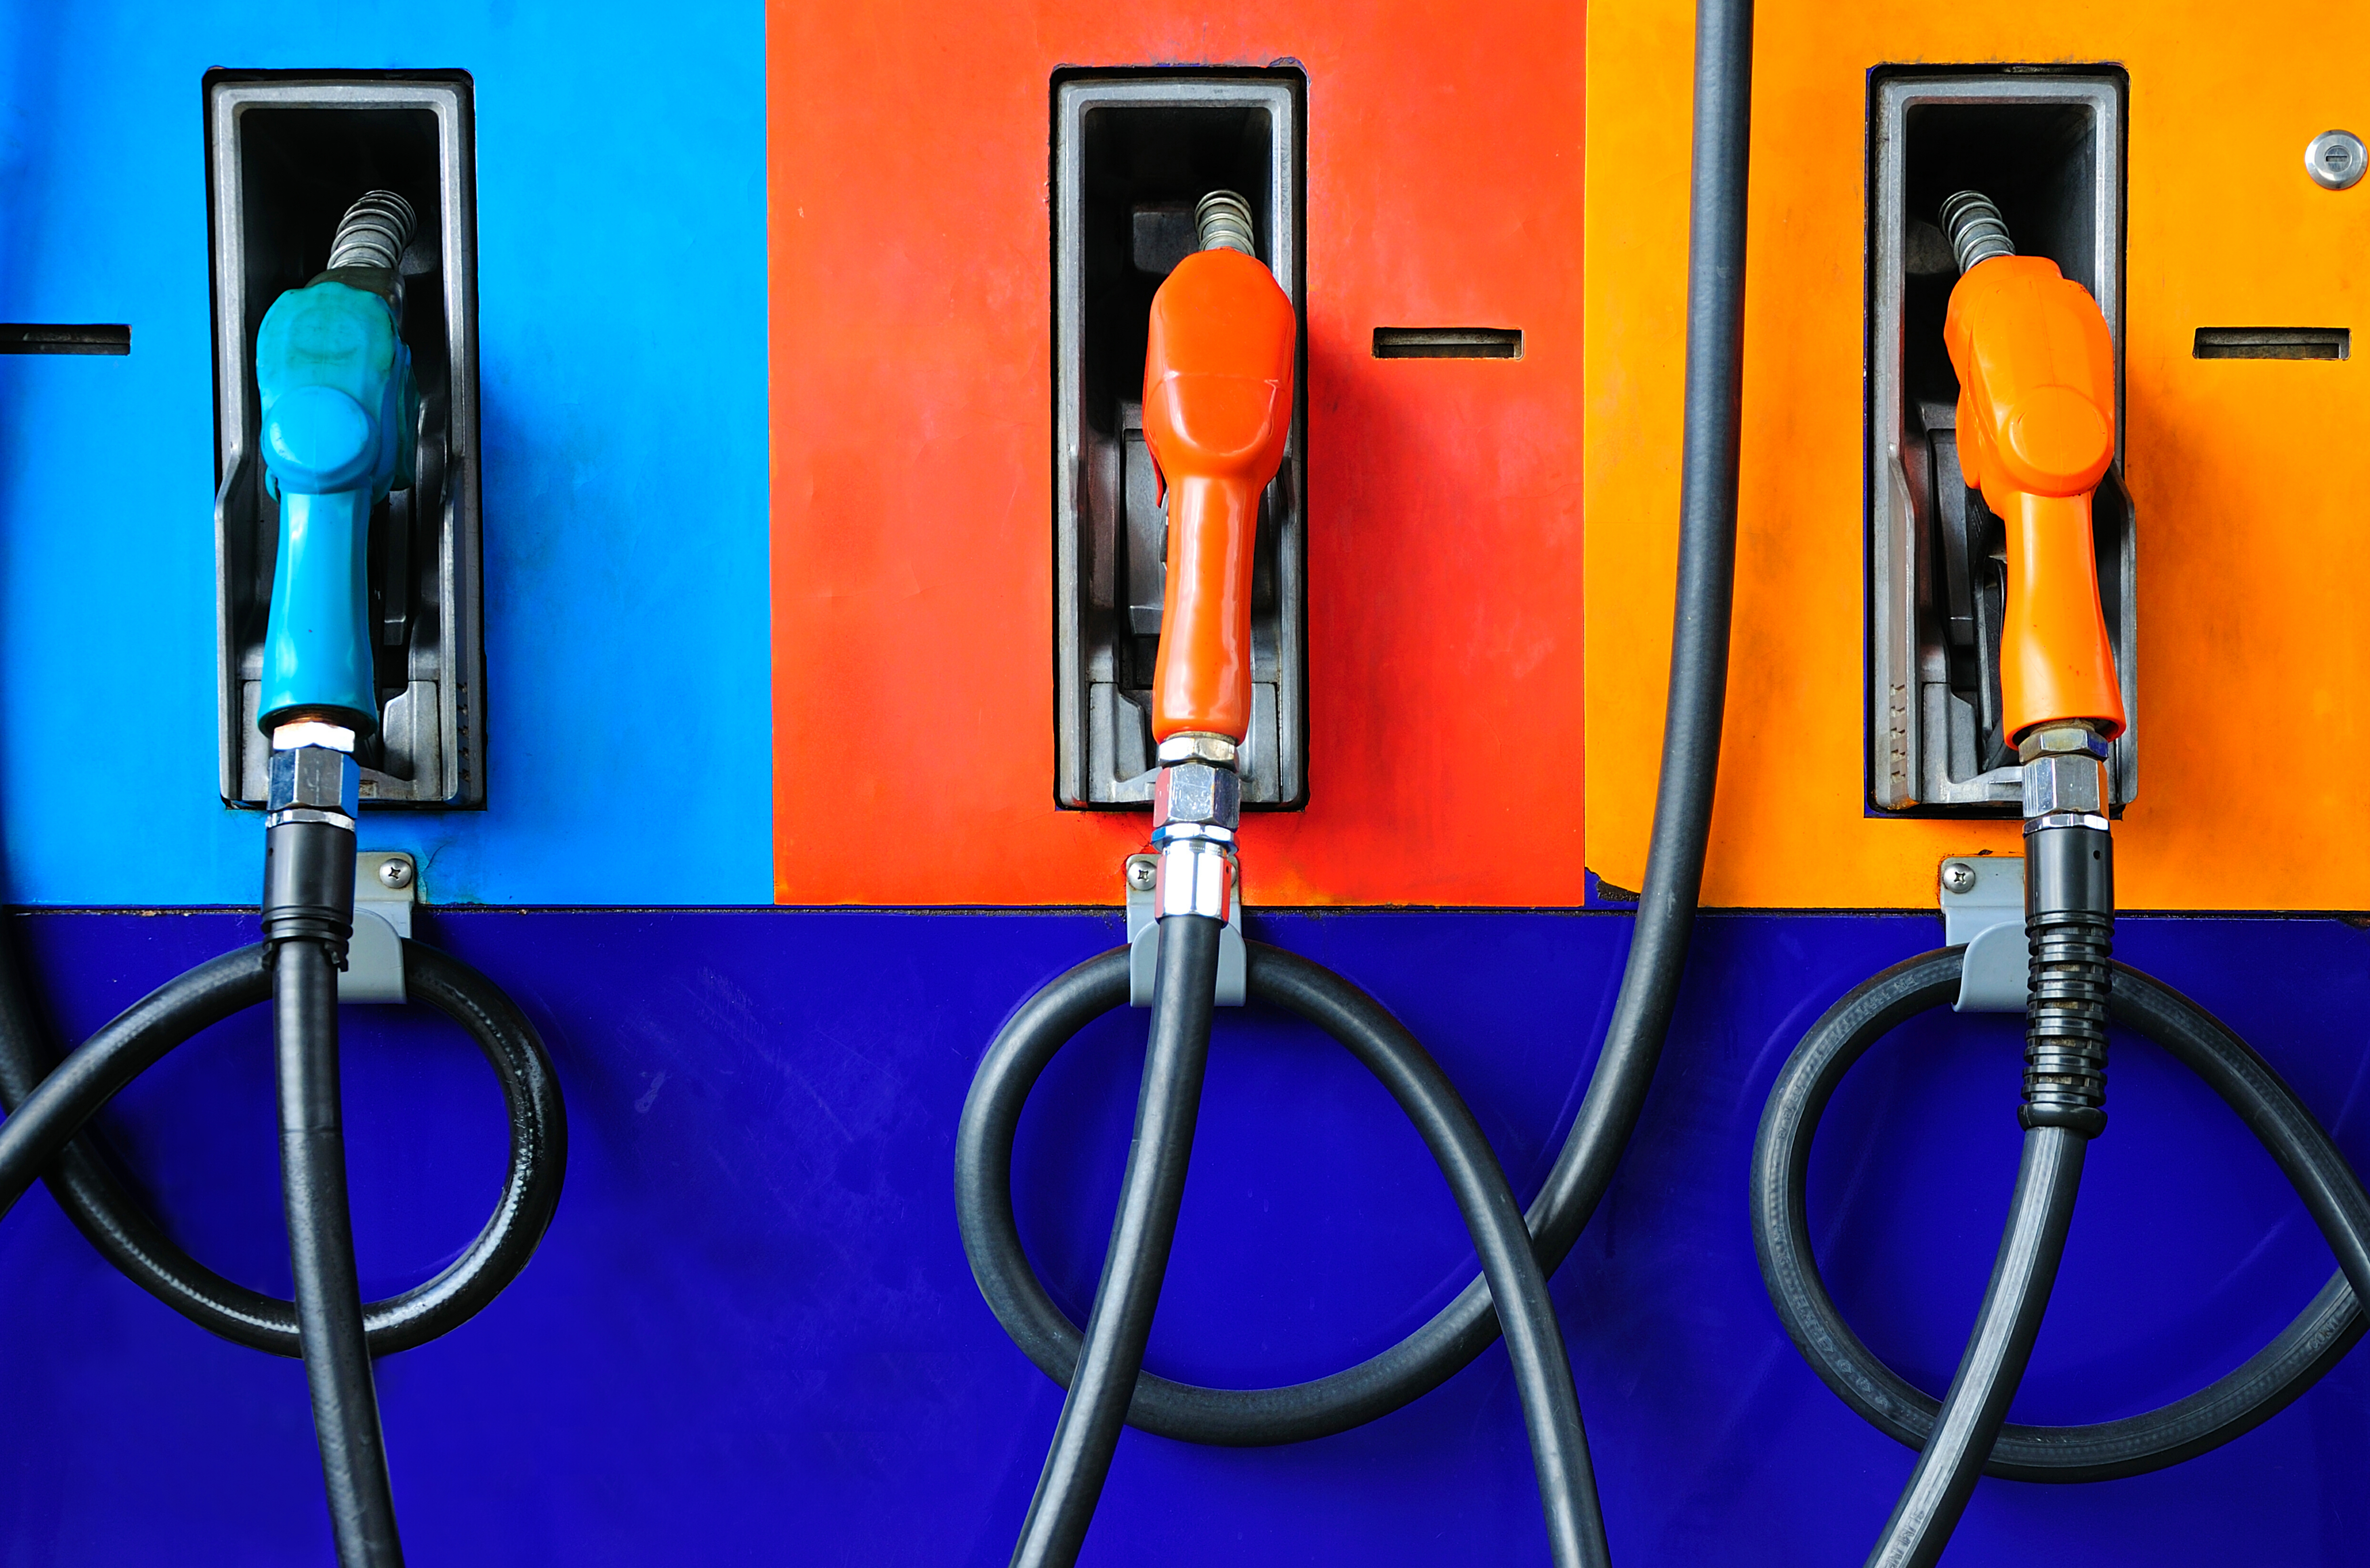 Gas Prices Are Climbing — Here Are 3 Ways to Save Money at the Pump